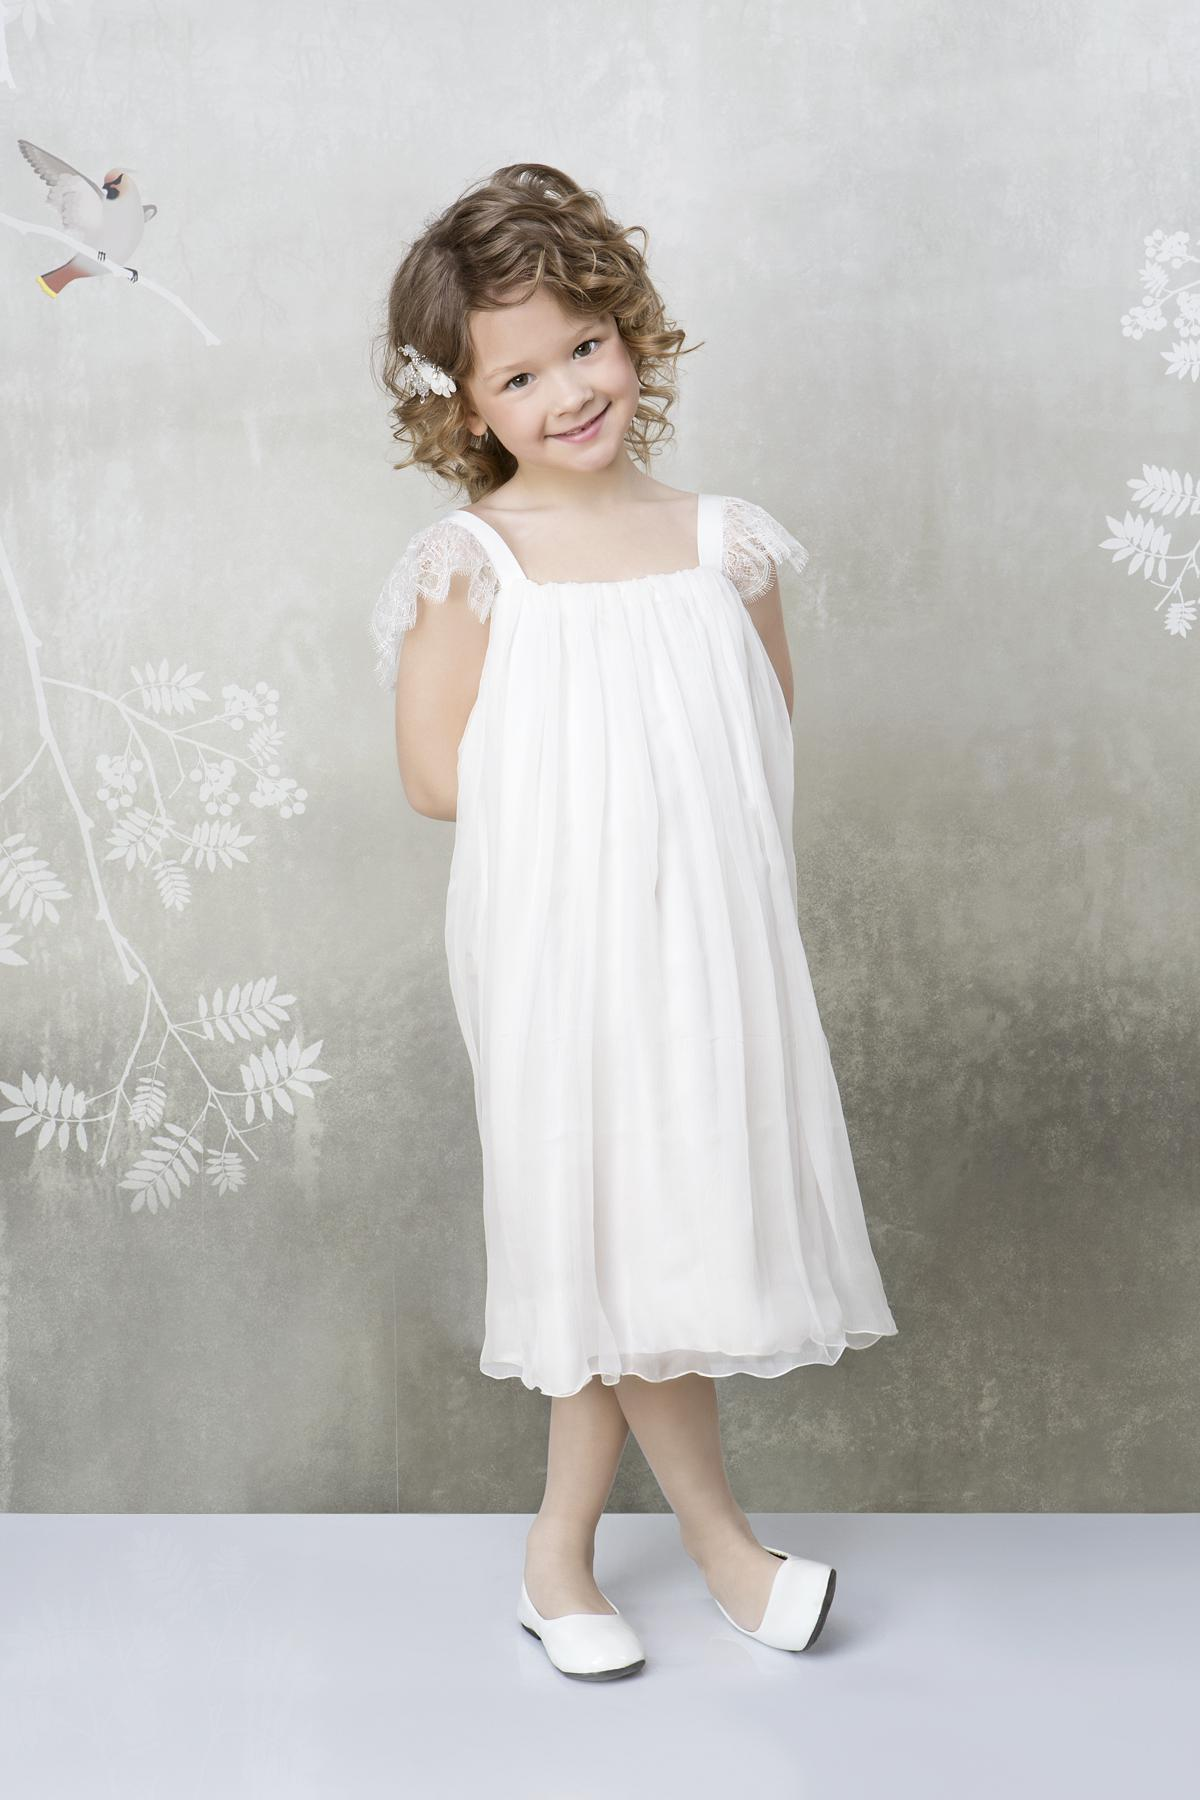 b6999e8a7a Cute flower girl dresses from Sadoni - Love Our Wedding